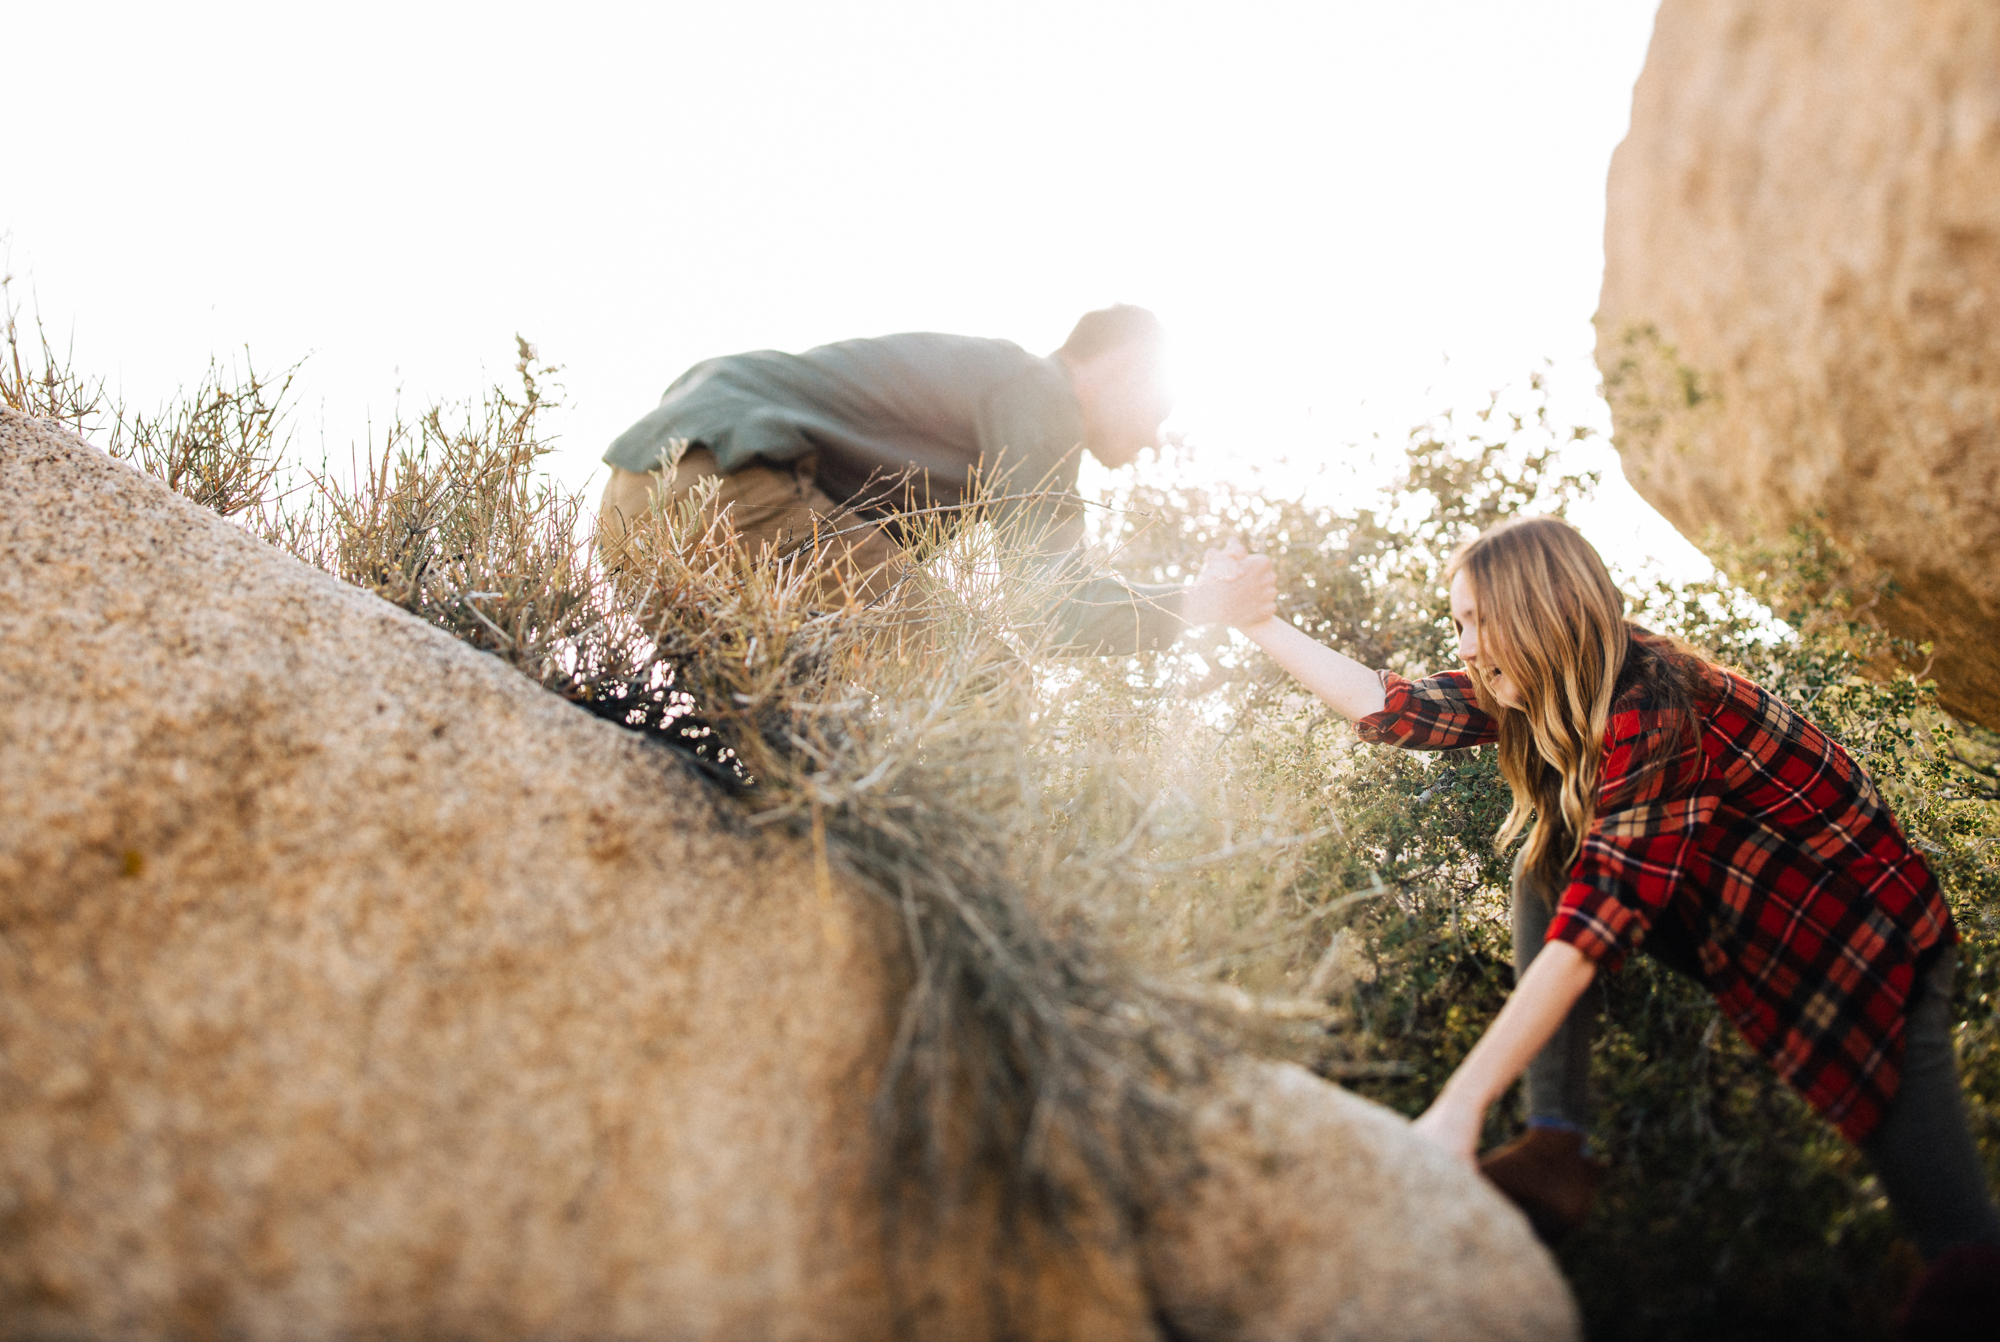 ©Isaiah & Taylor Photography - Destination Wedding Photographers - Joshua Tree, California Adventure Engagement-022.jpg